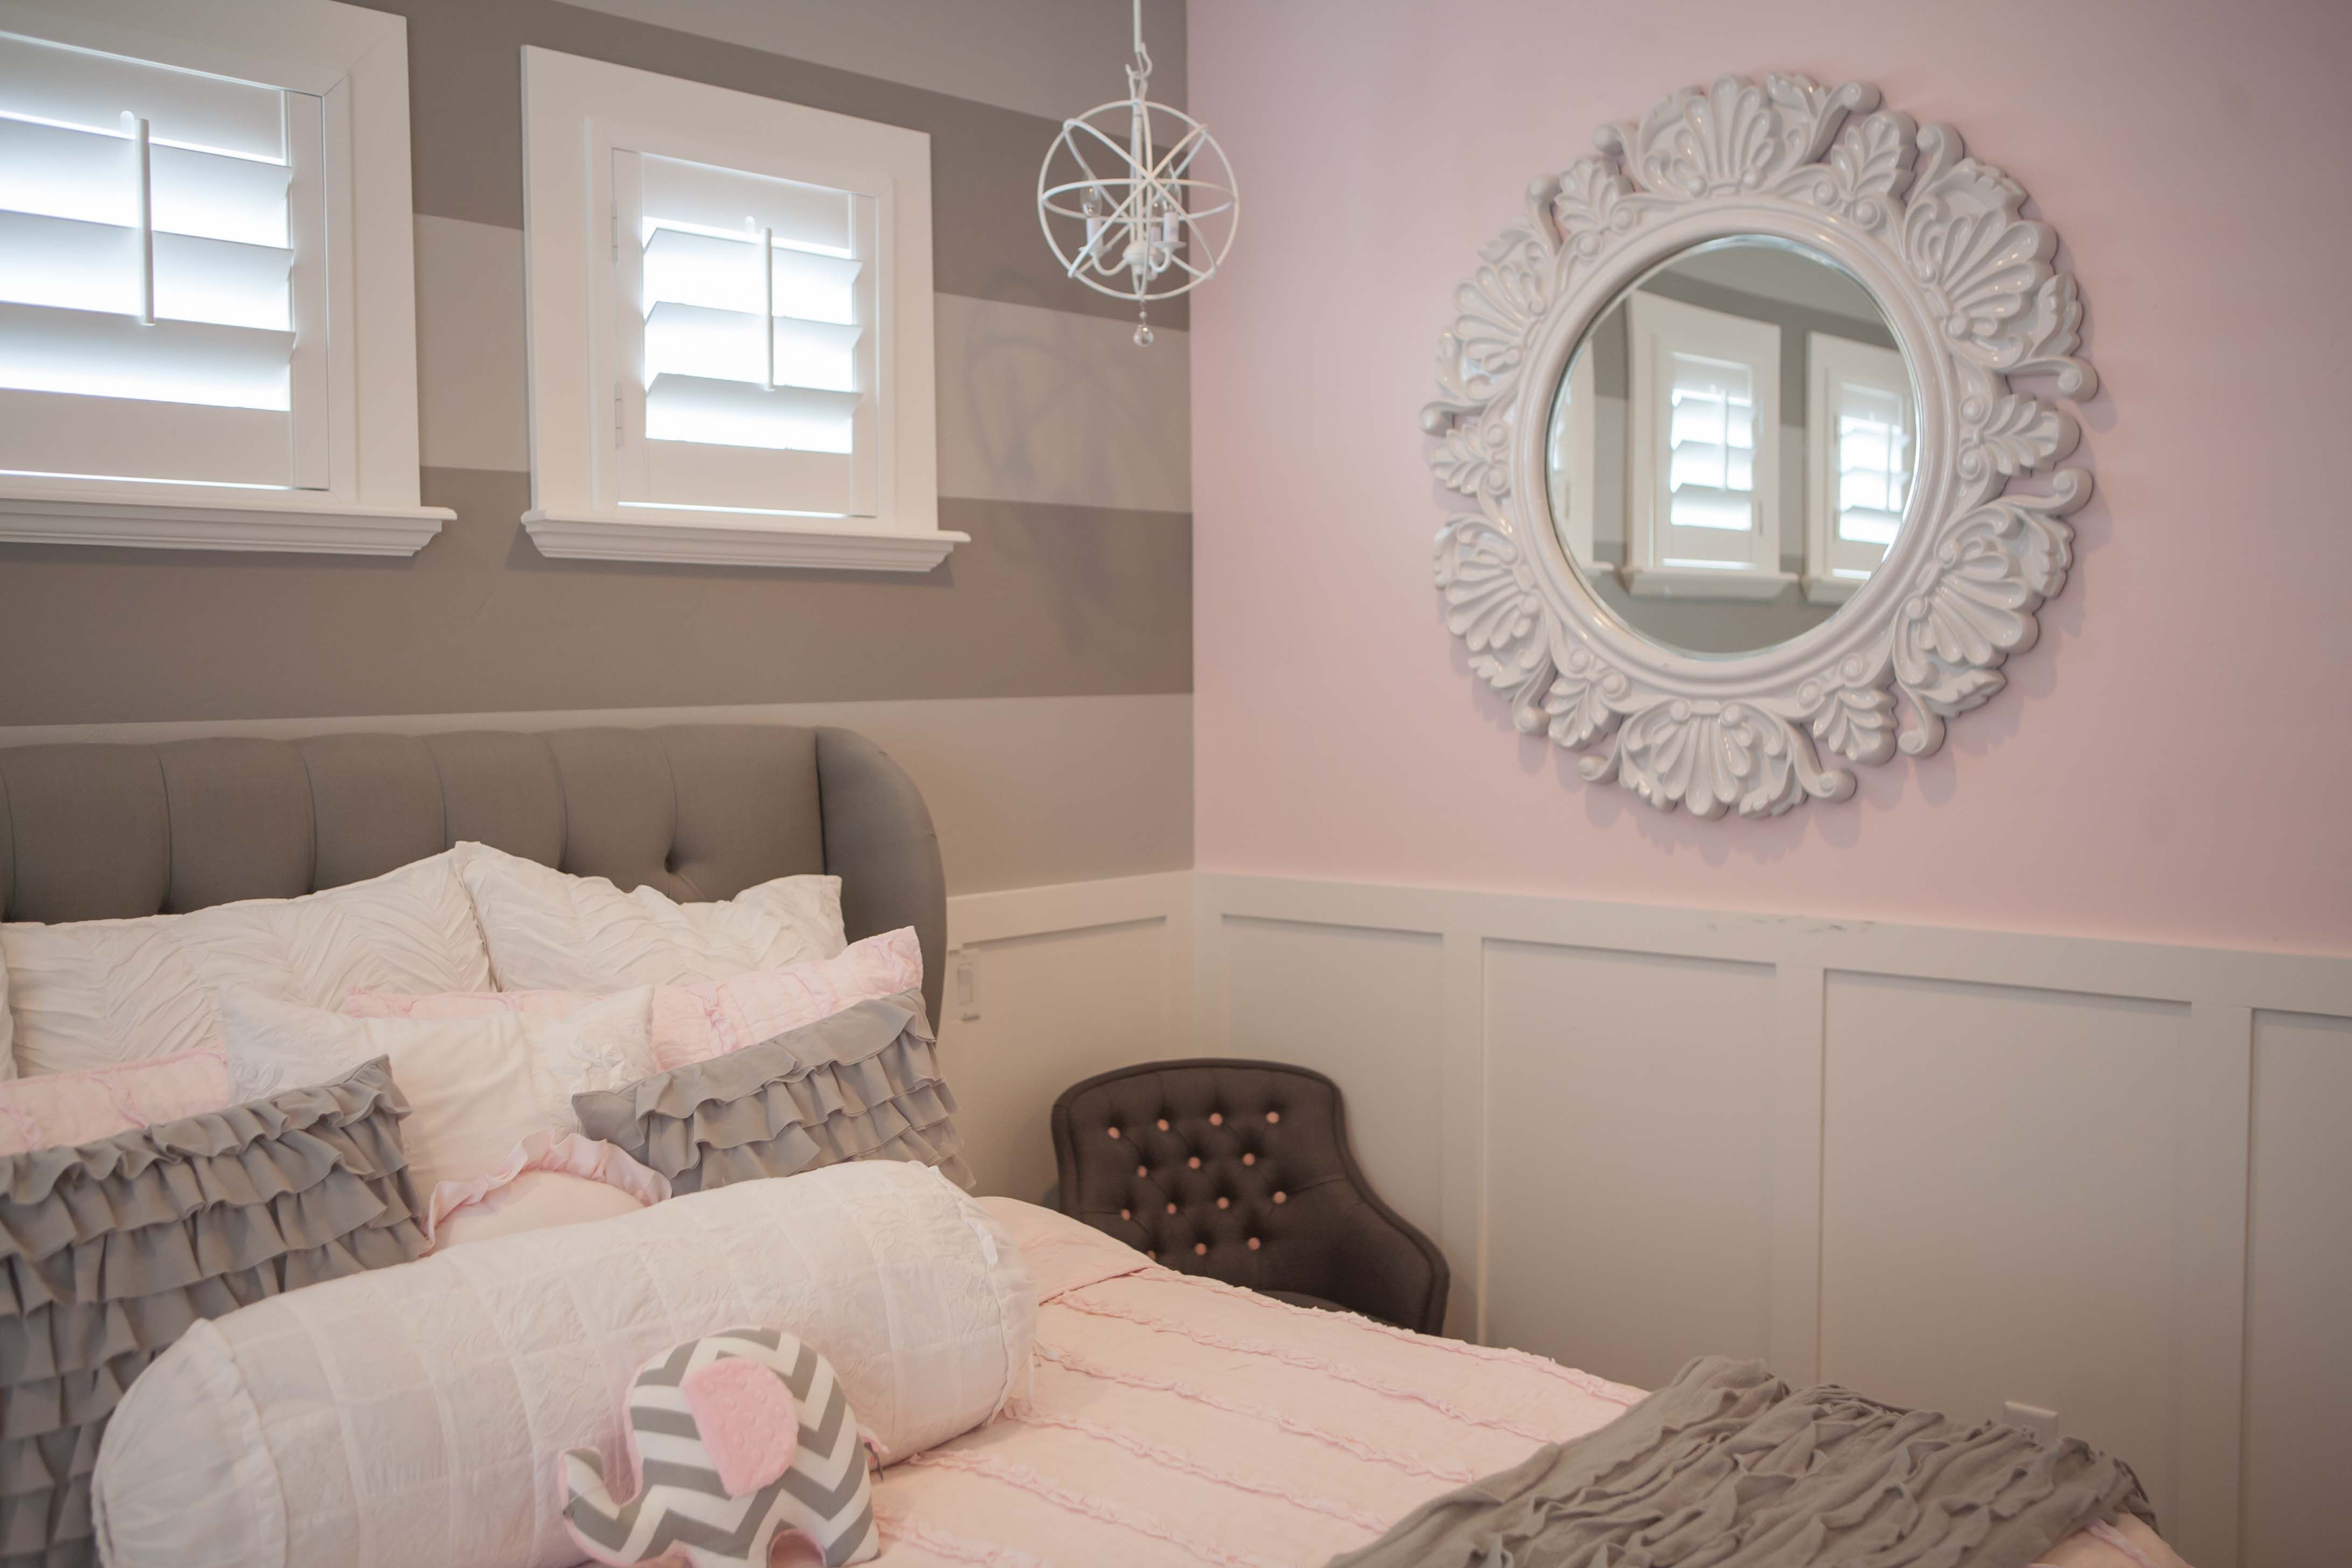 pink and gray bedroom www elliebeandesign com home decor ideas grey girls rooms pink on grey and light pink bedroom decorating ideas id=19305